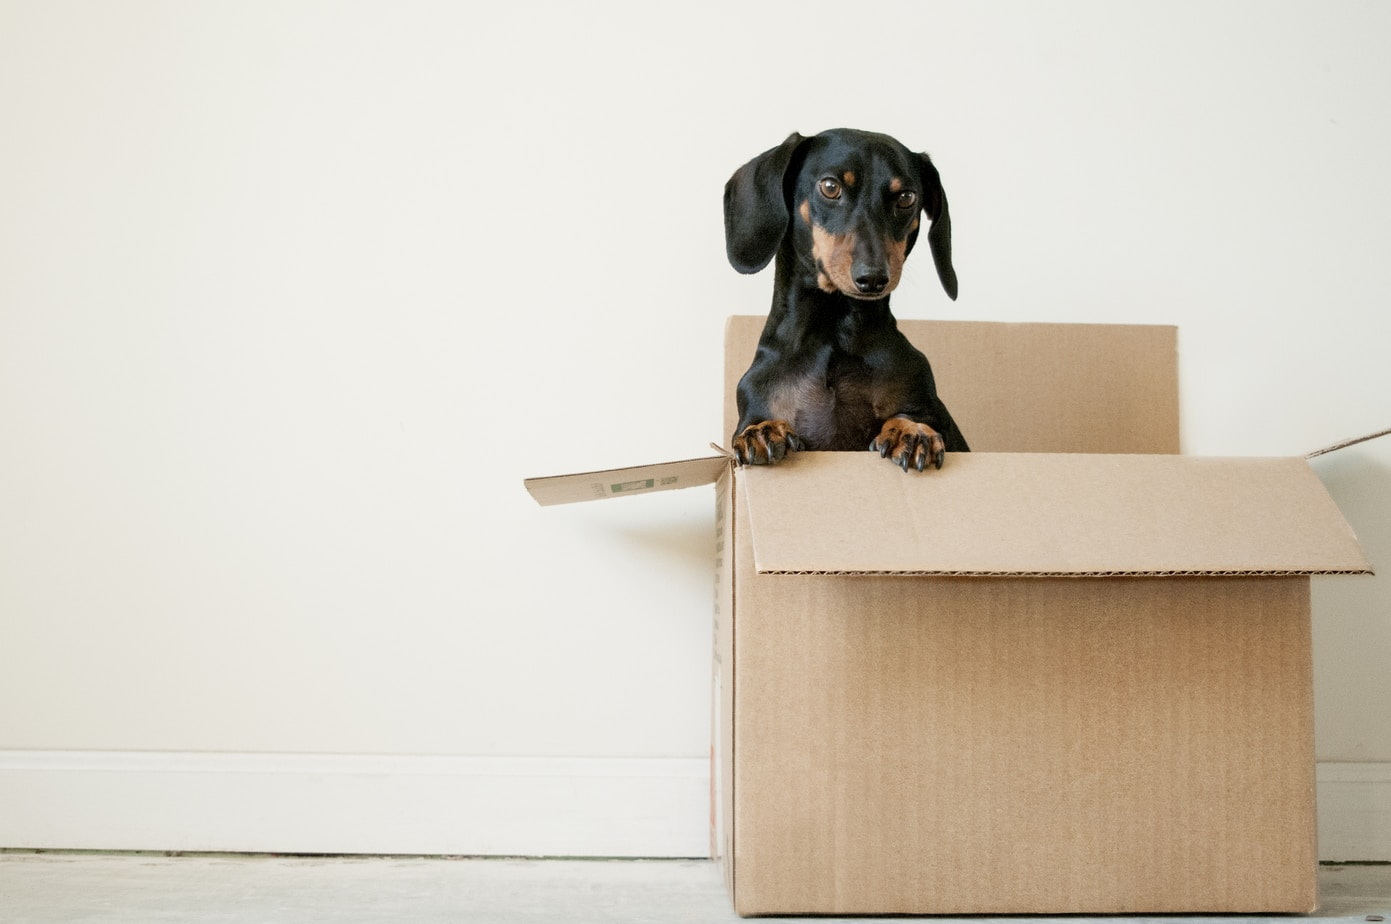 black and brown Dachshund standing in box